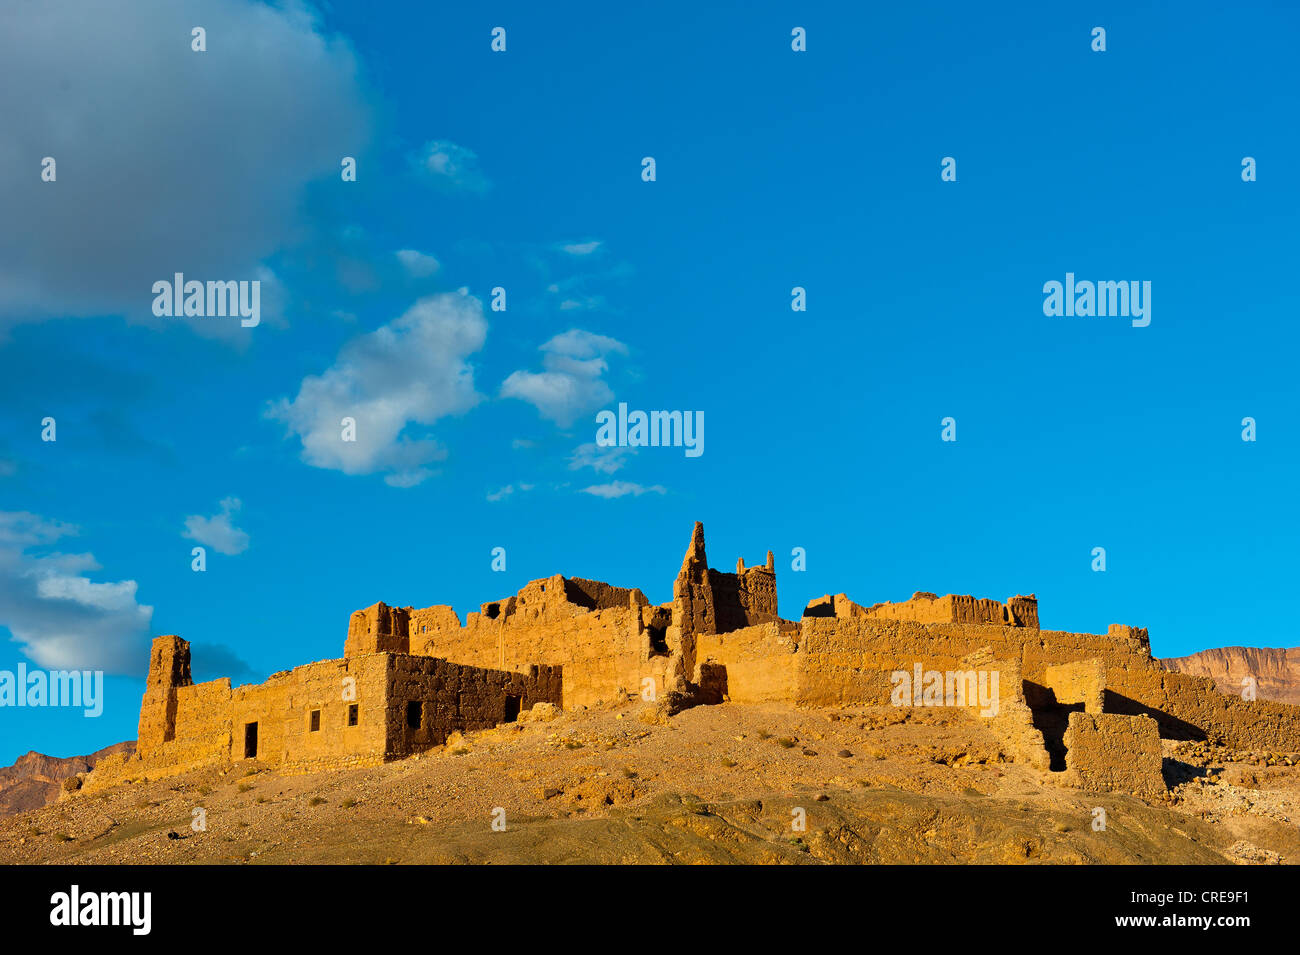 Ruined Kasbah on a hill, a former Berbers' house built of adobe, Draa Valley, southern Morocco, Morocco, Africa - Stock Image